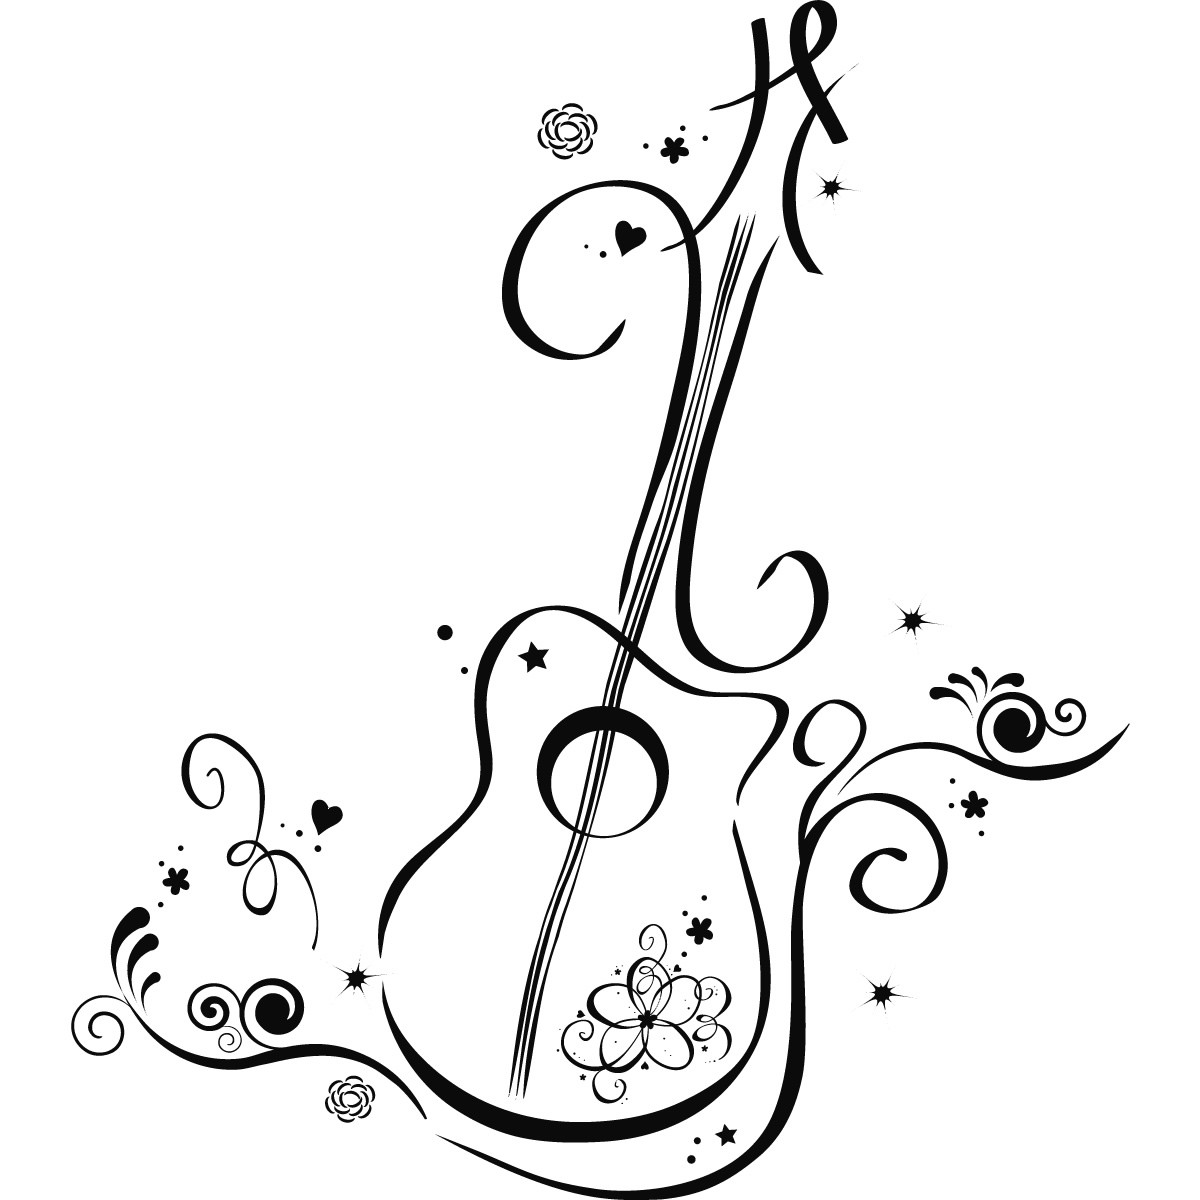 1200x1200 Black And White Guitar Wallpaper Free Download Hd Wallpapers